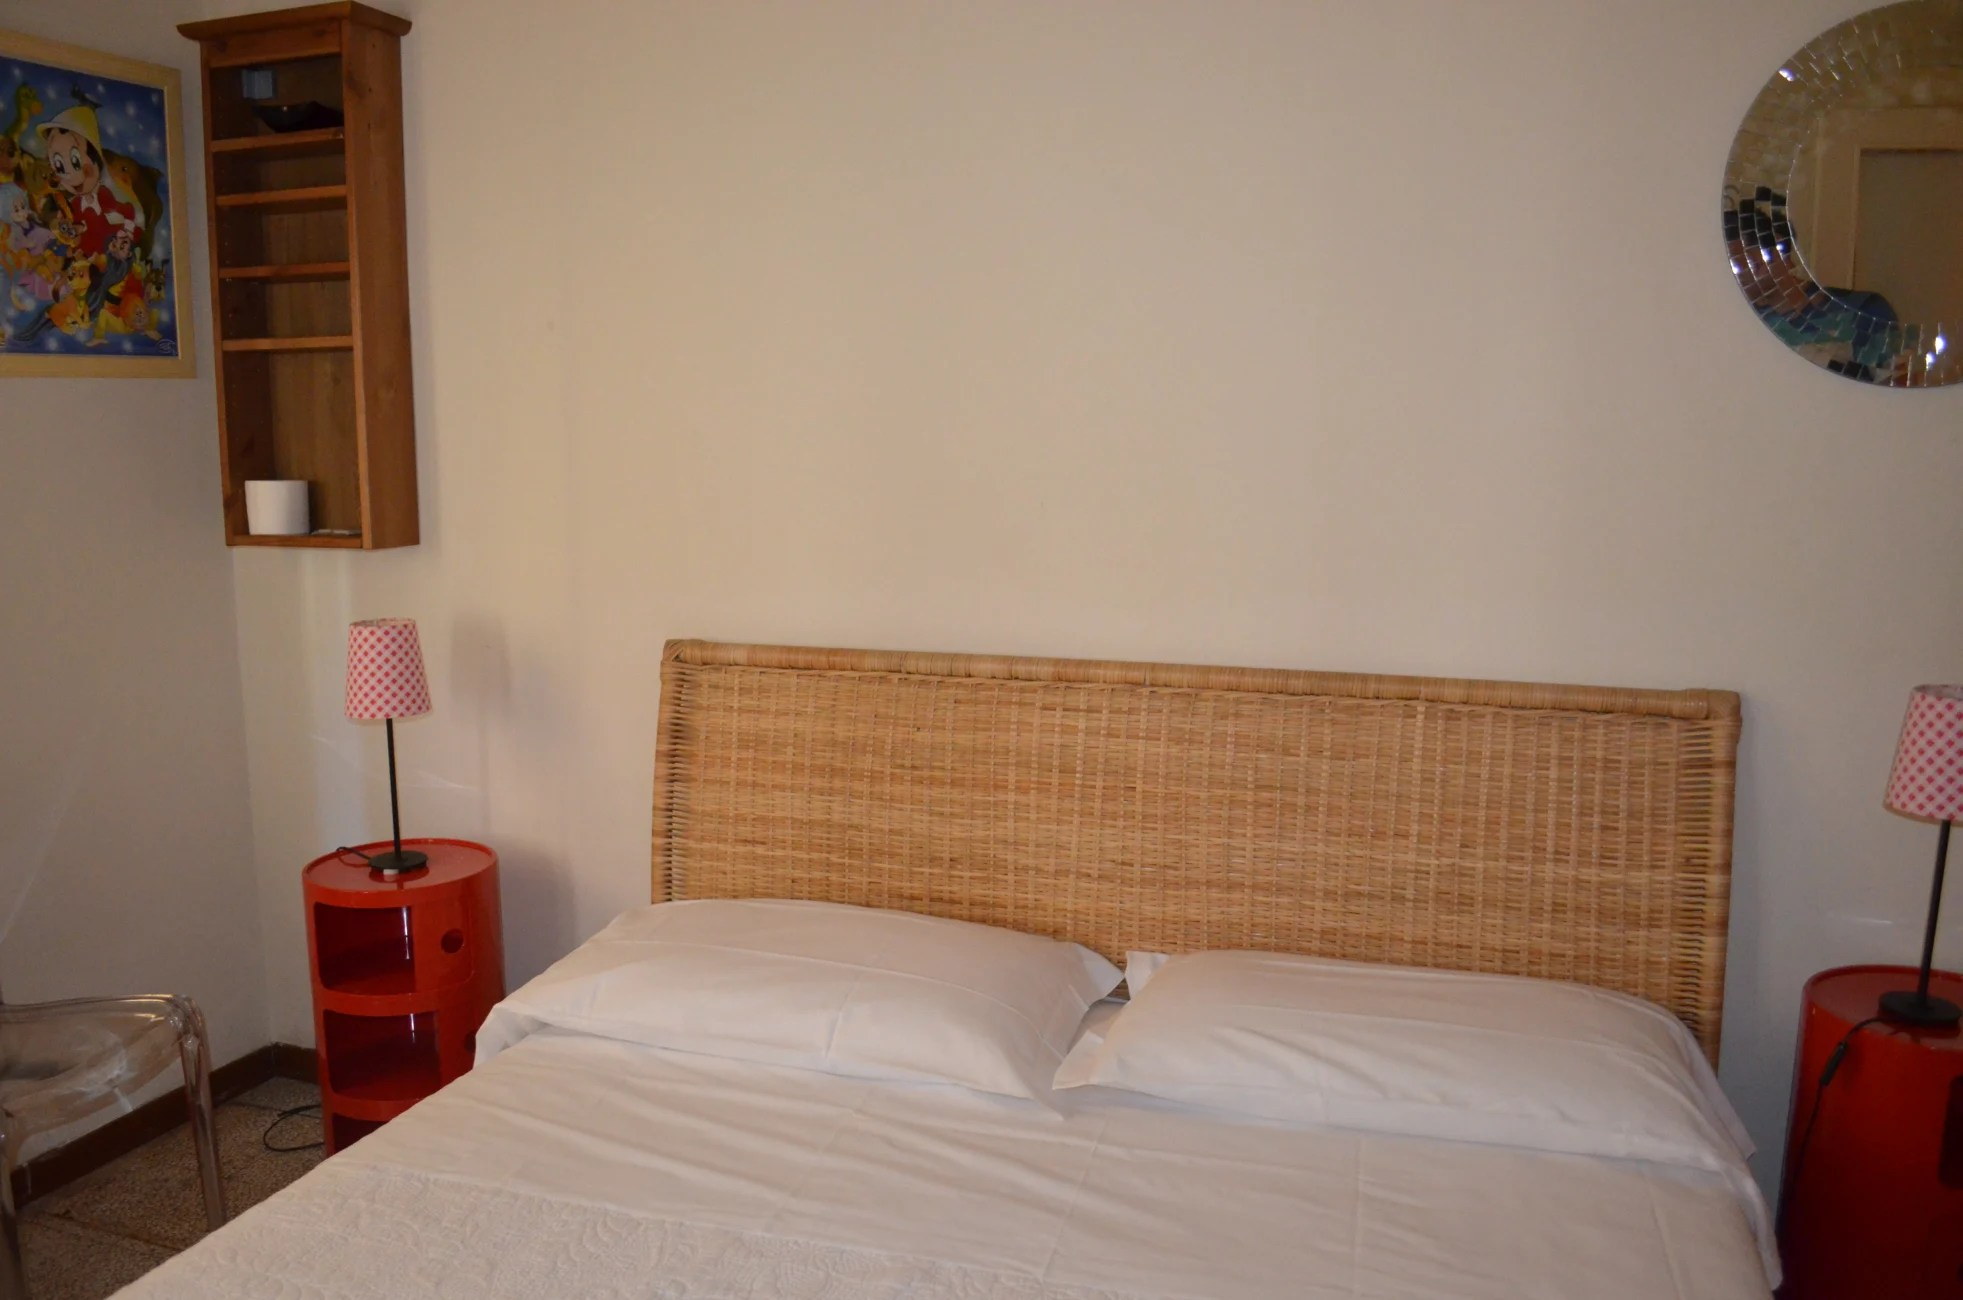 Guest House Soggiorno Monaco Firenze Bed Breakfast Bed Bed Peterson Florence Trivago In